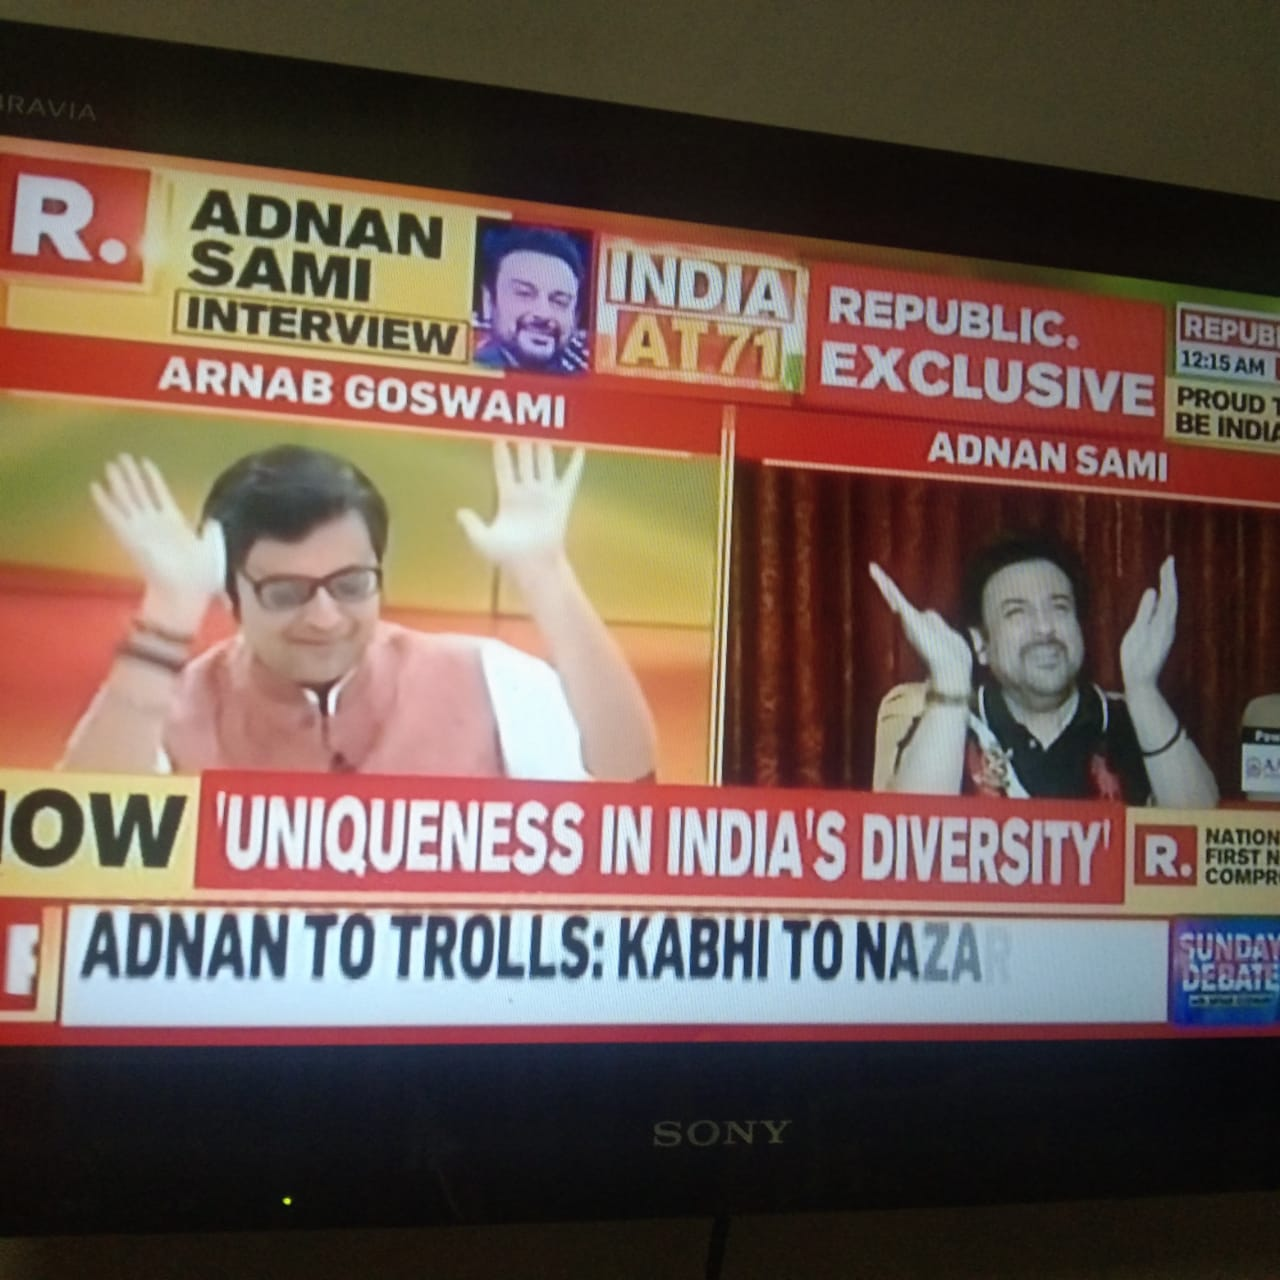 For once, Arnab dances on his show